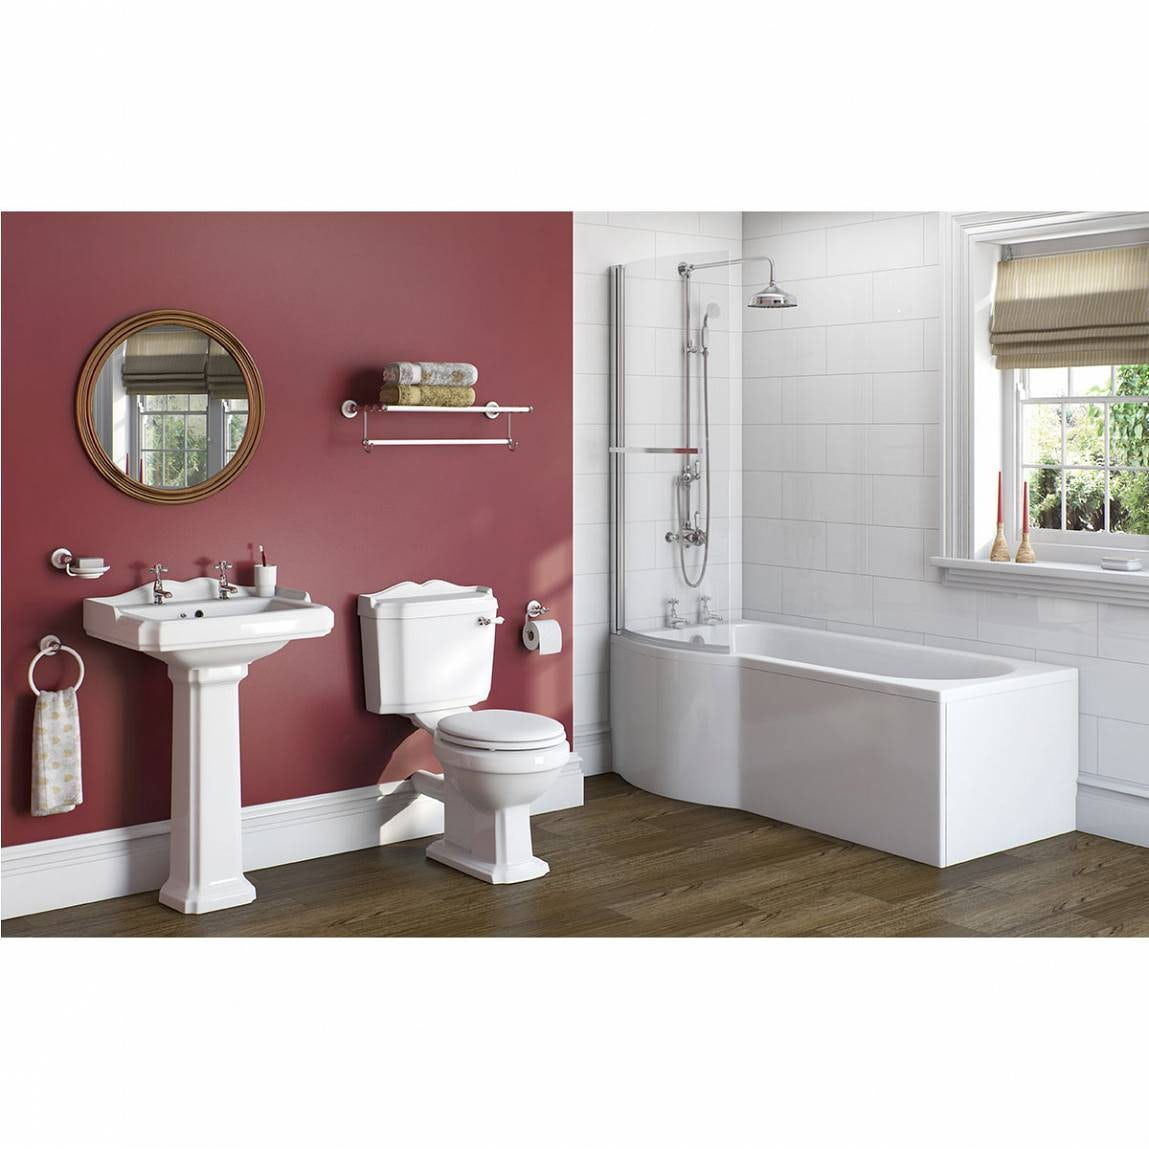 Winchester Bathroom Suite with Evesham 1700 x 850 Shower Bath LH